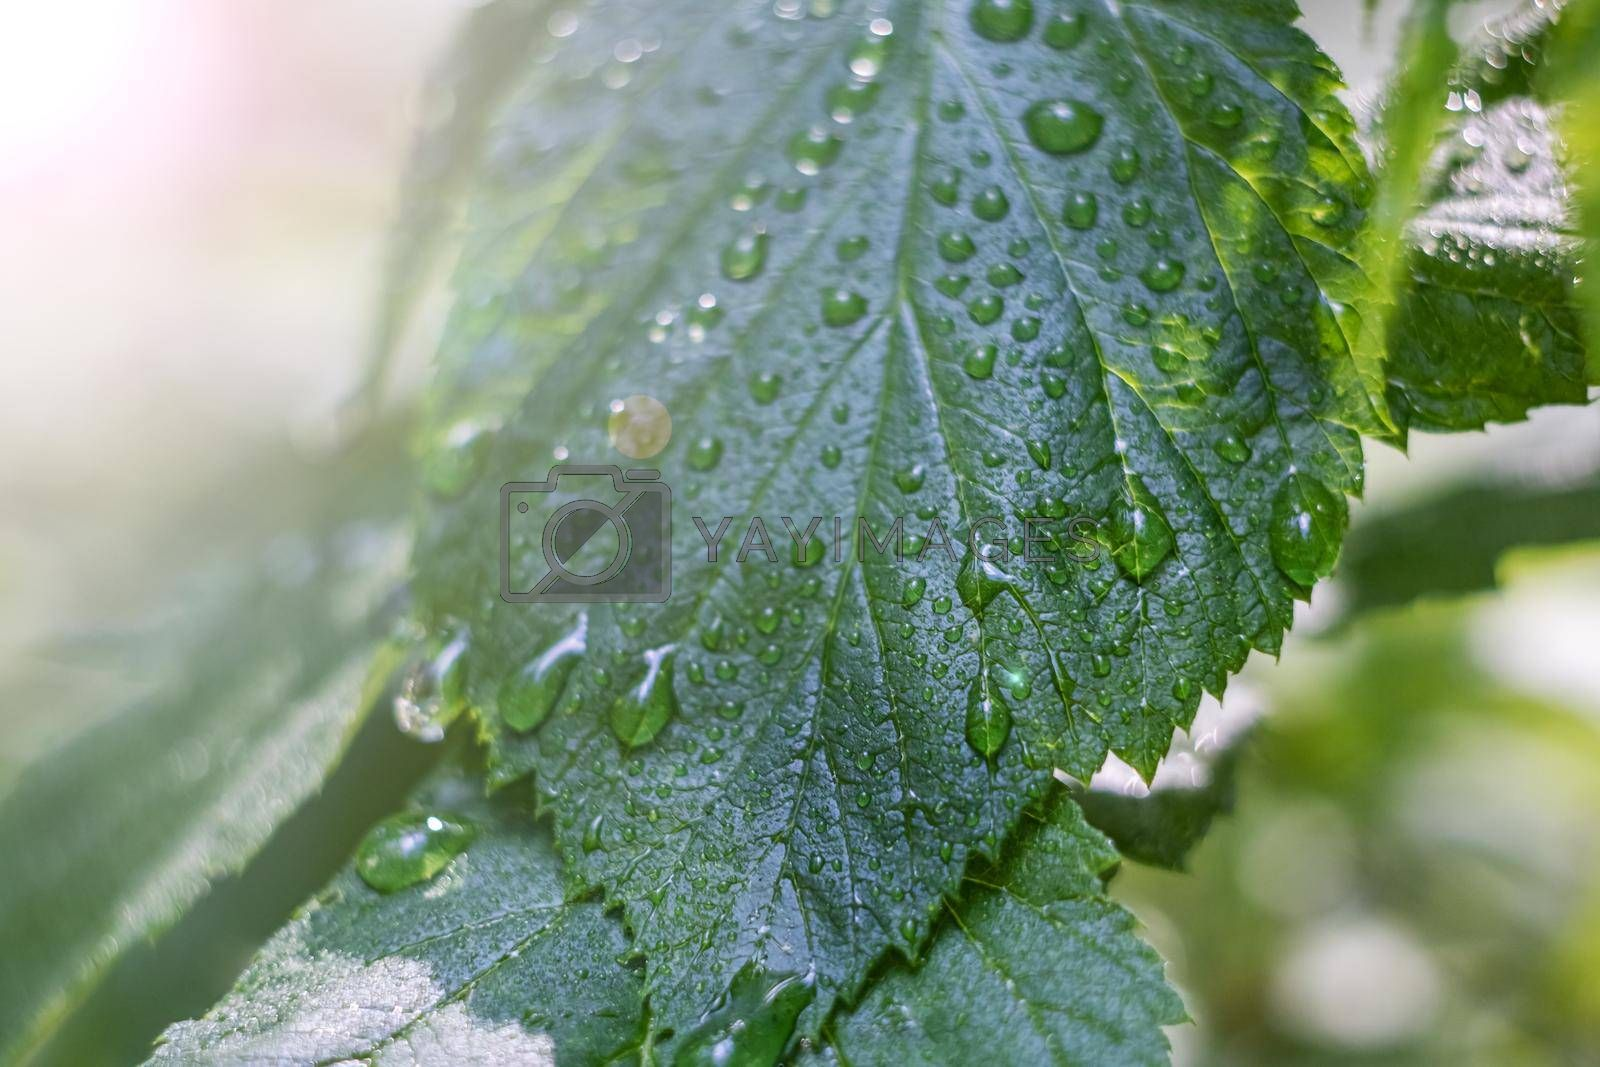 Leaves of grass with dew drops close up, macro photo